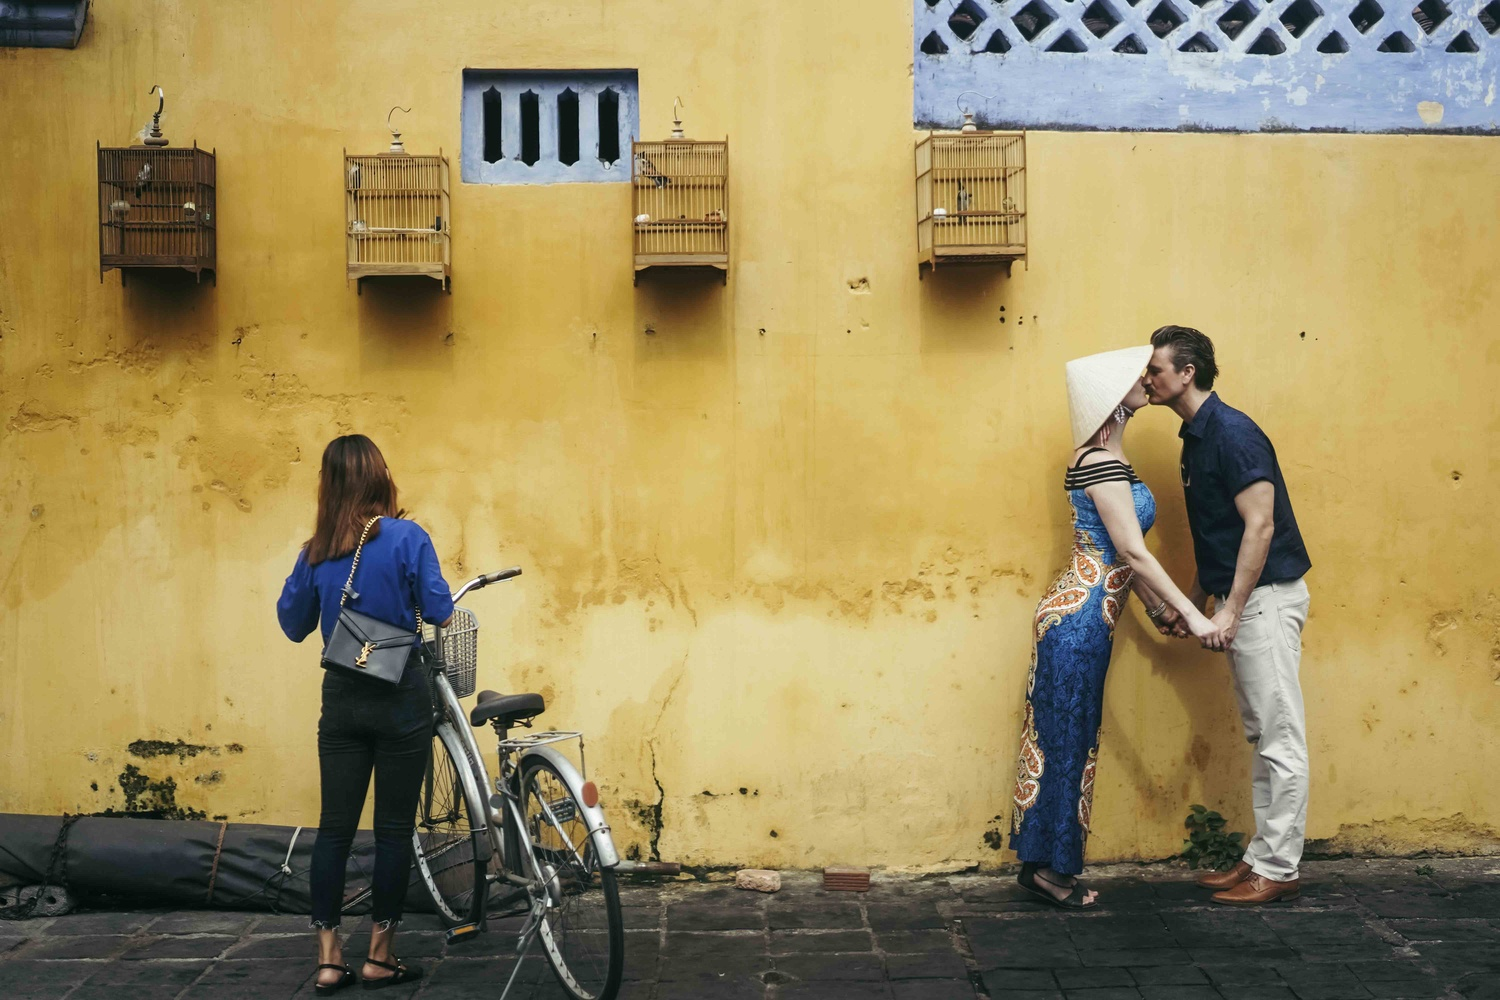 Hoi An Photographer by Fernandes Photographer